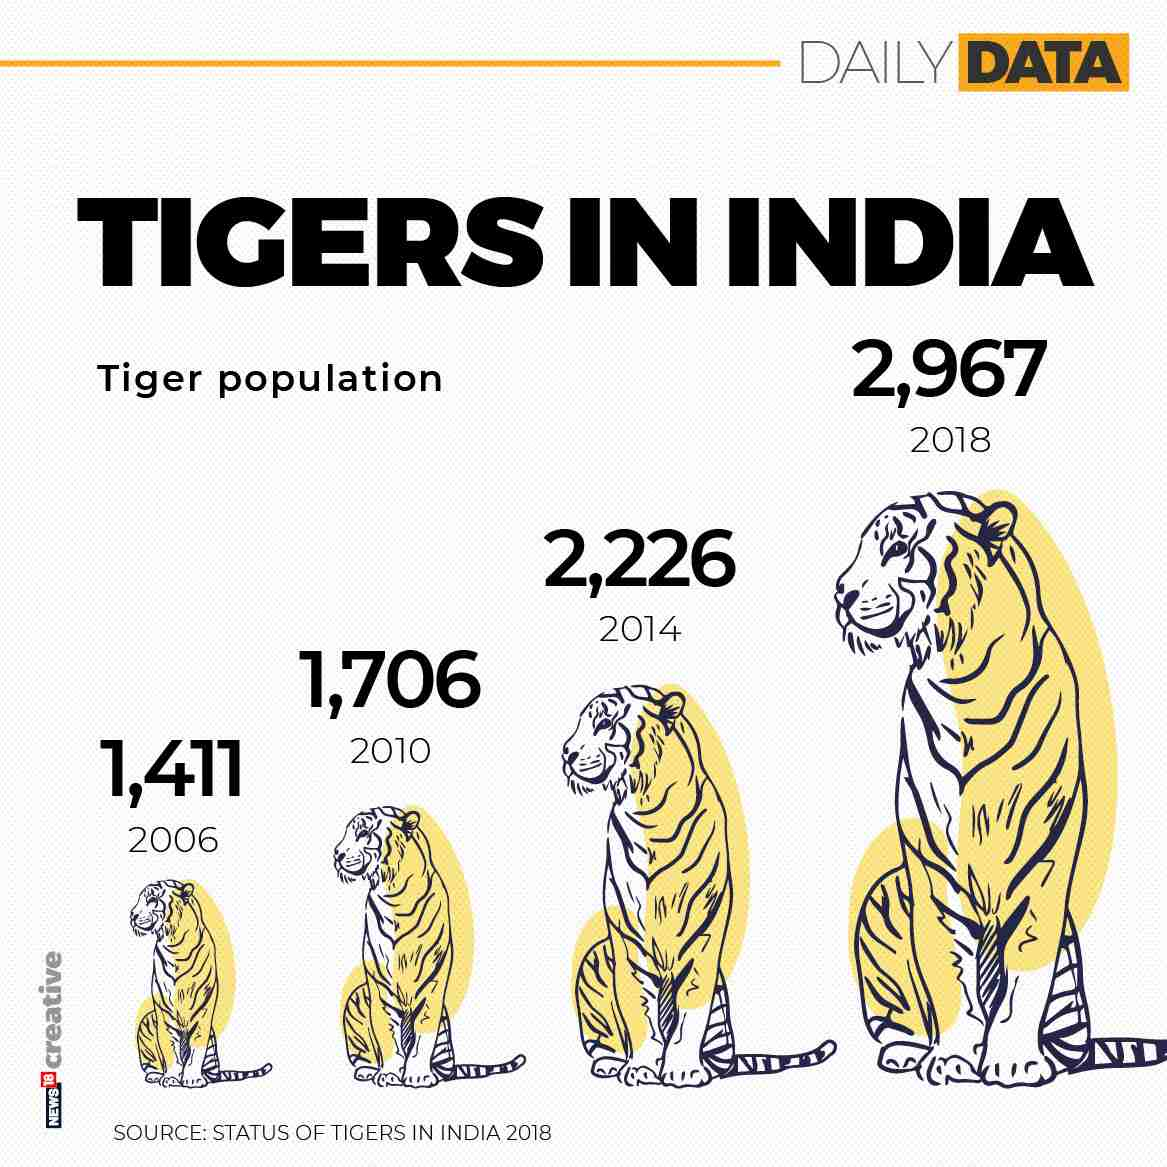 Tiger numbers in India over the past few years. Image: NW18 Creative